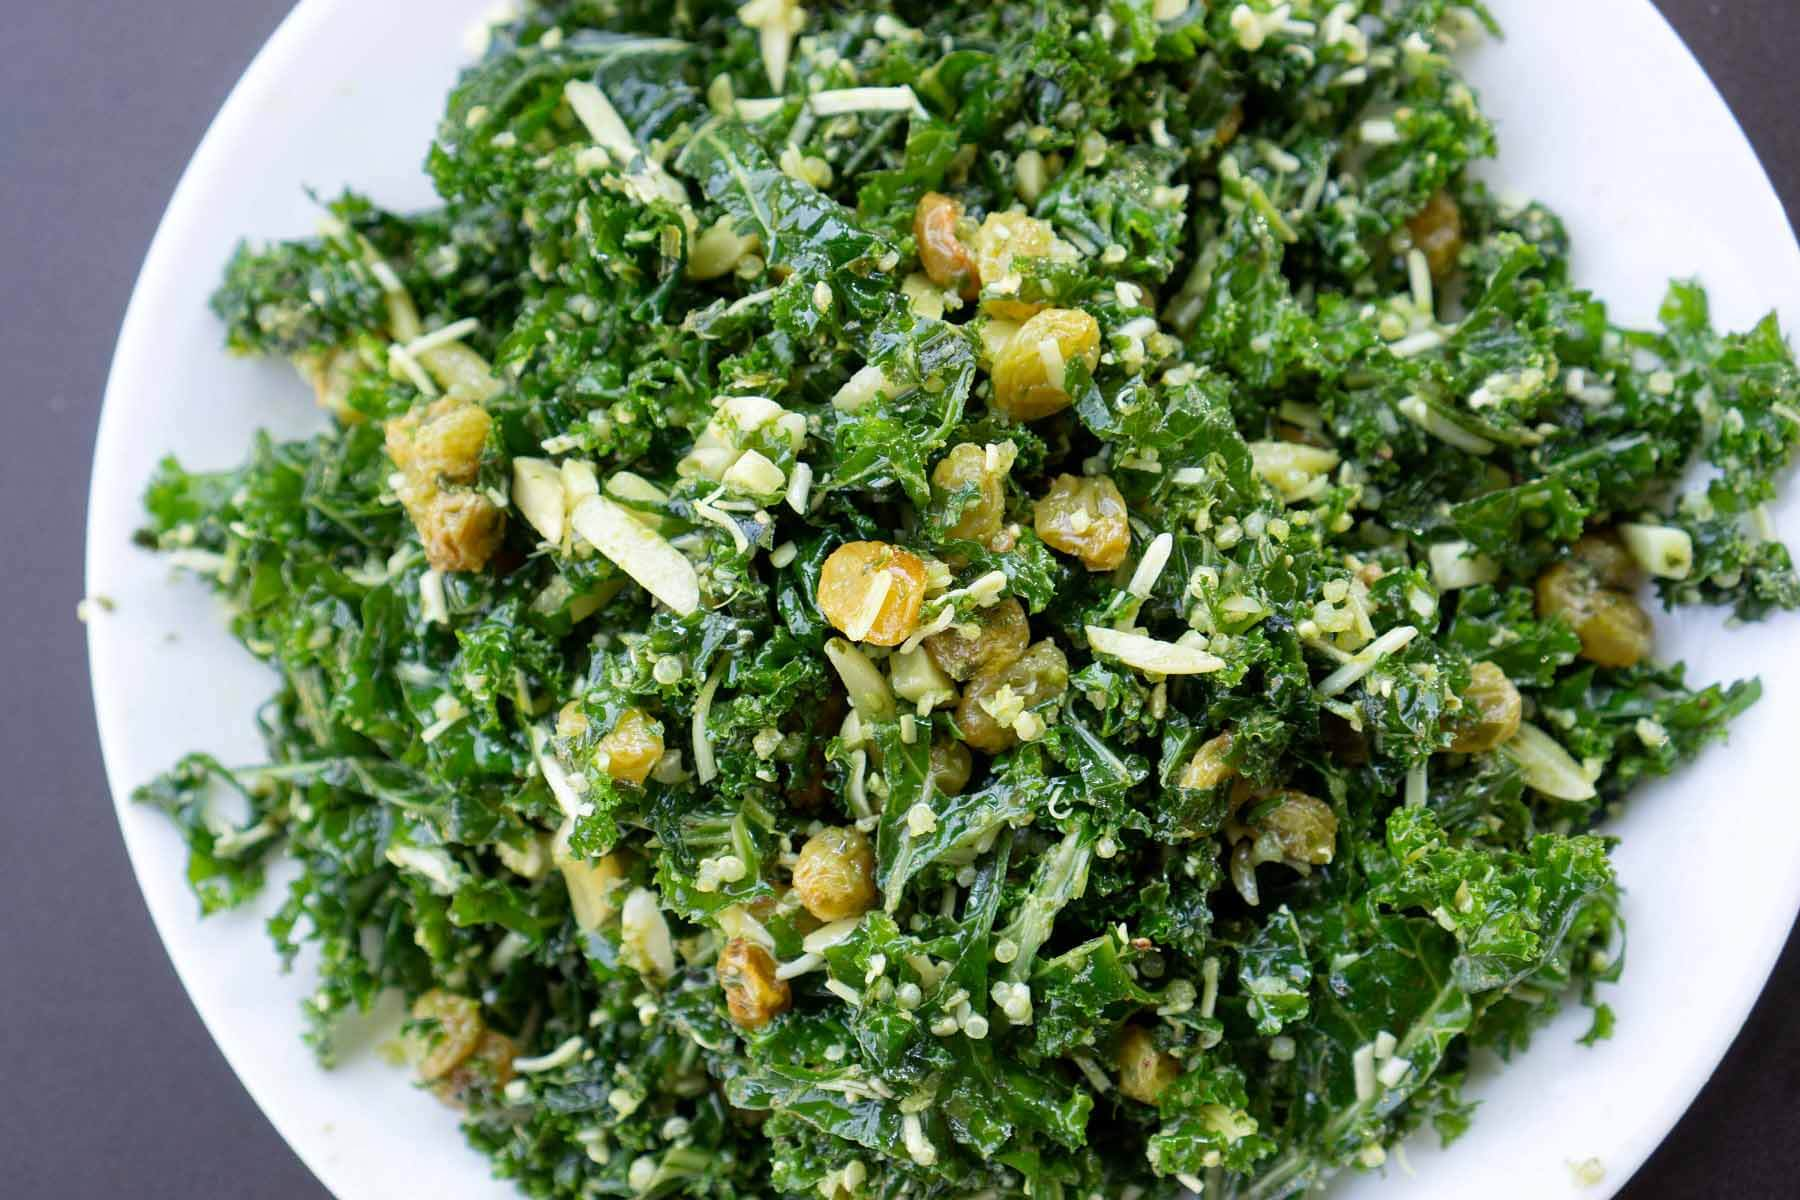 Kale salad from Cordelia's Table in Harbor Town